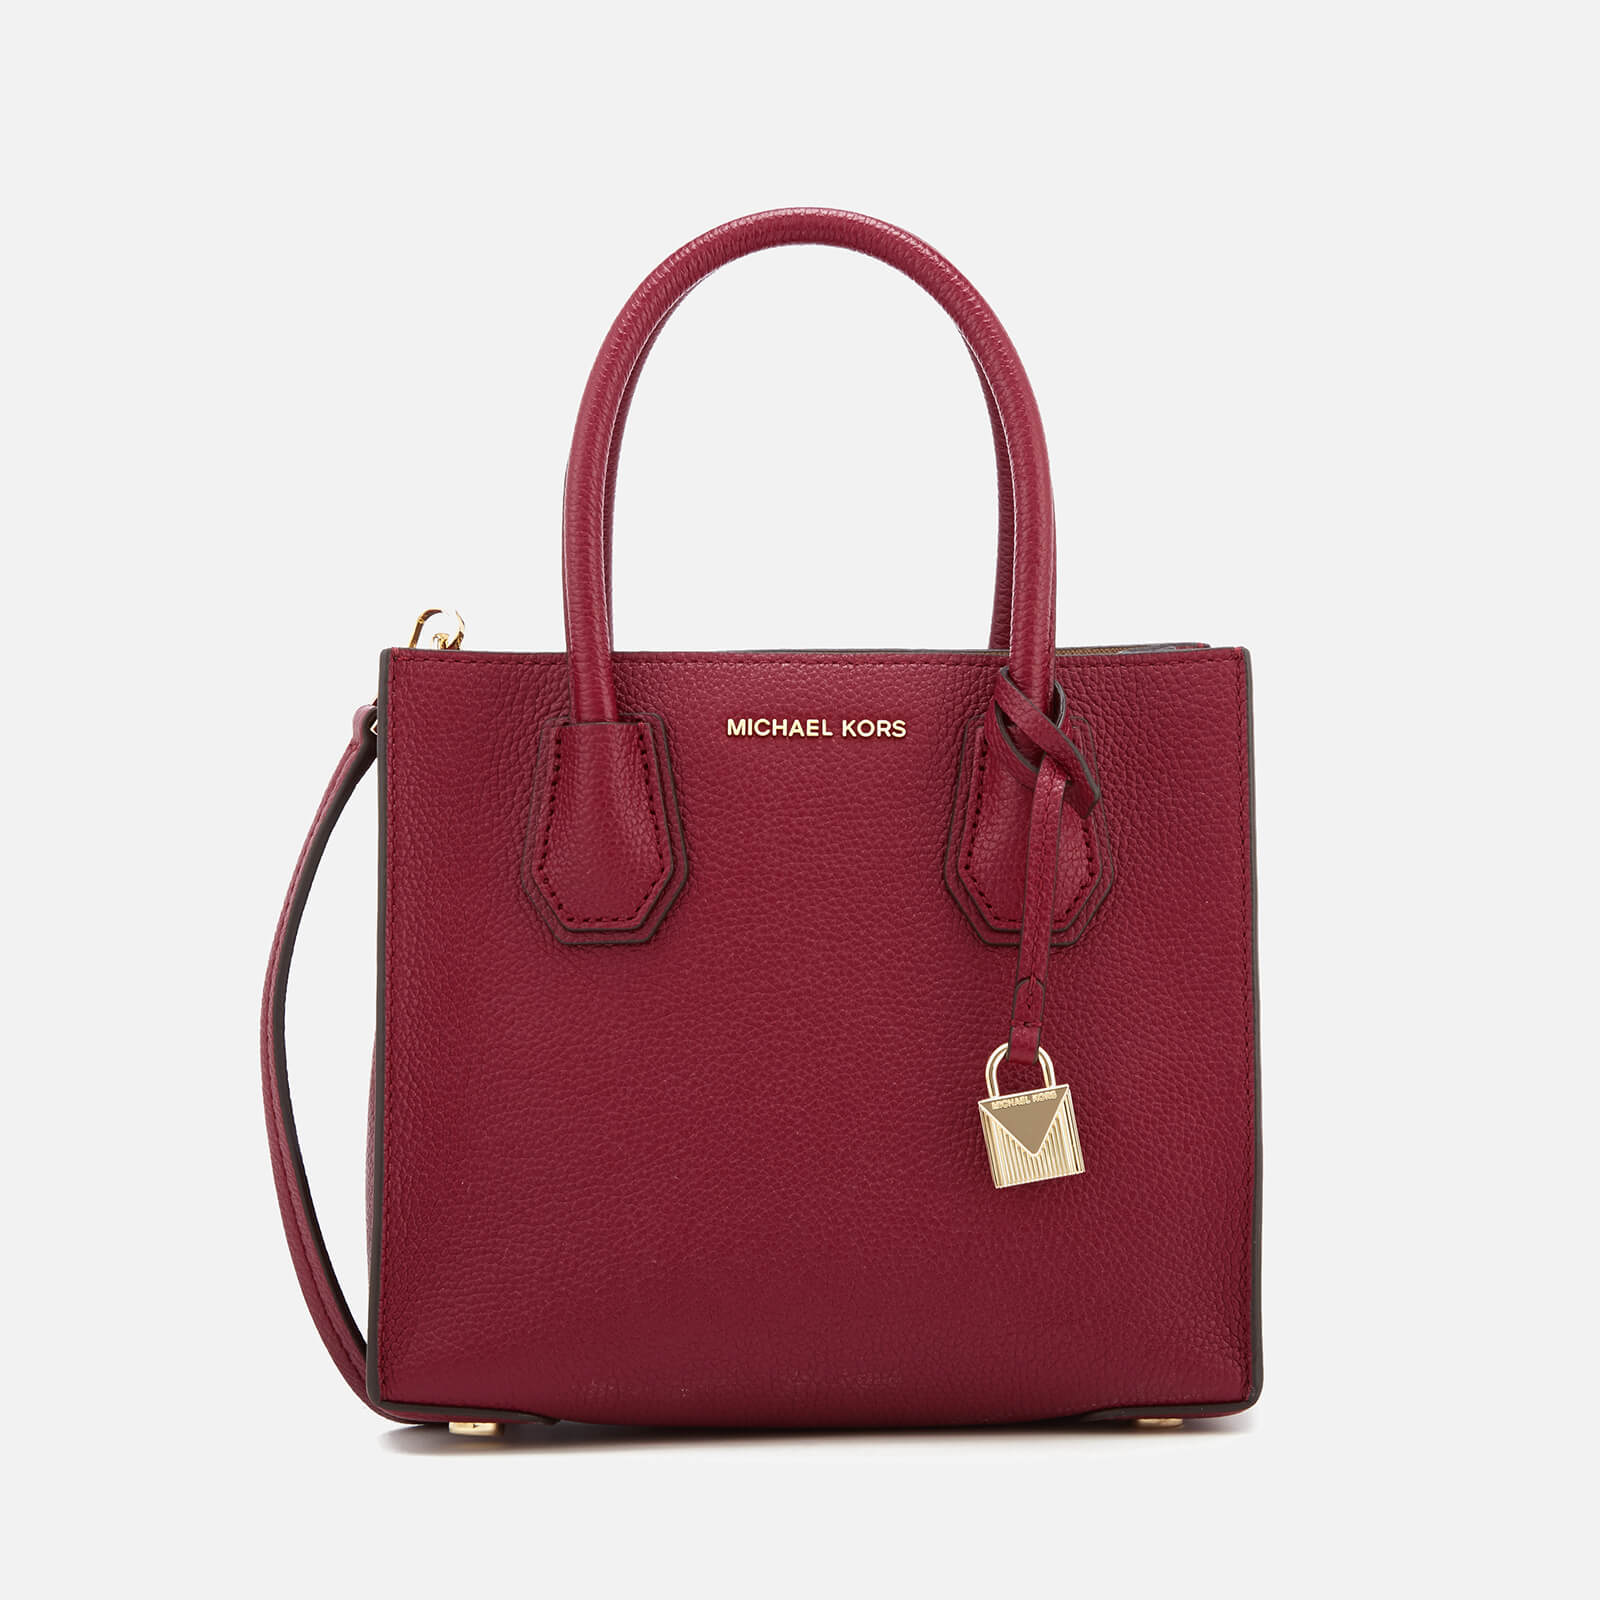 9a77f4431517 MICHAEL MICHAEL KORS Women's Mercer Medium Tote Bag - Mulberry - Free UK  Delivery over £50